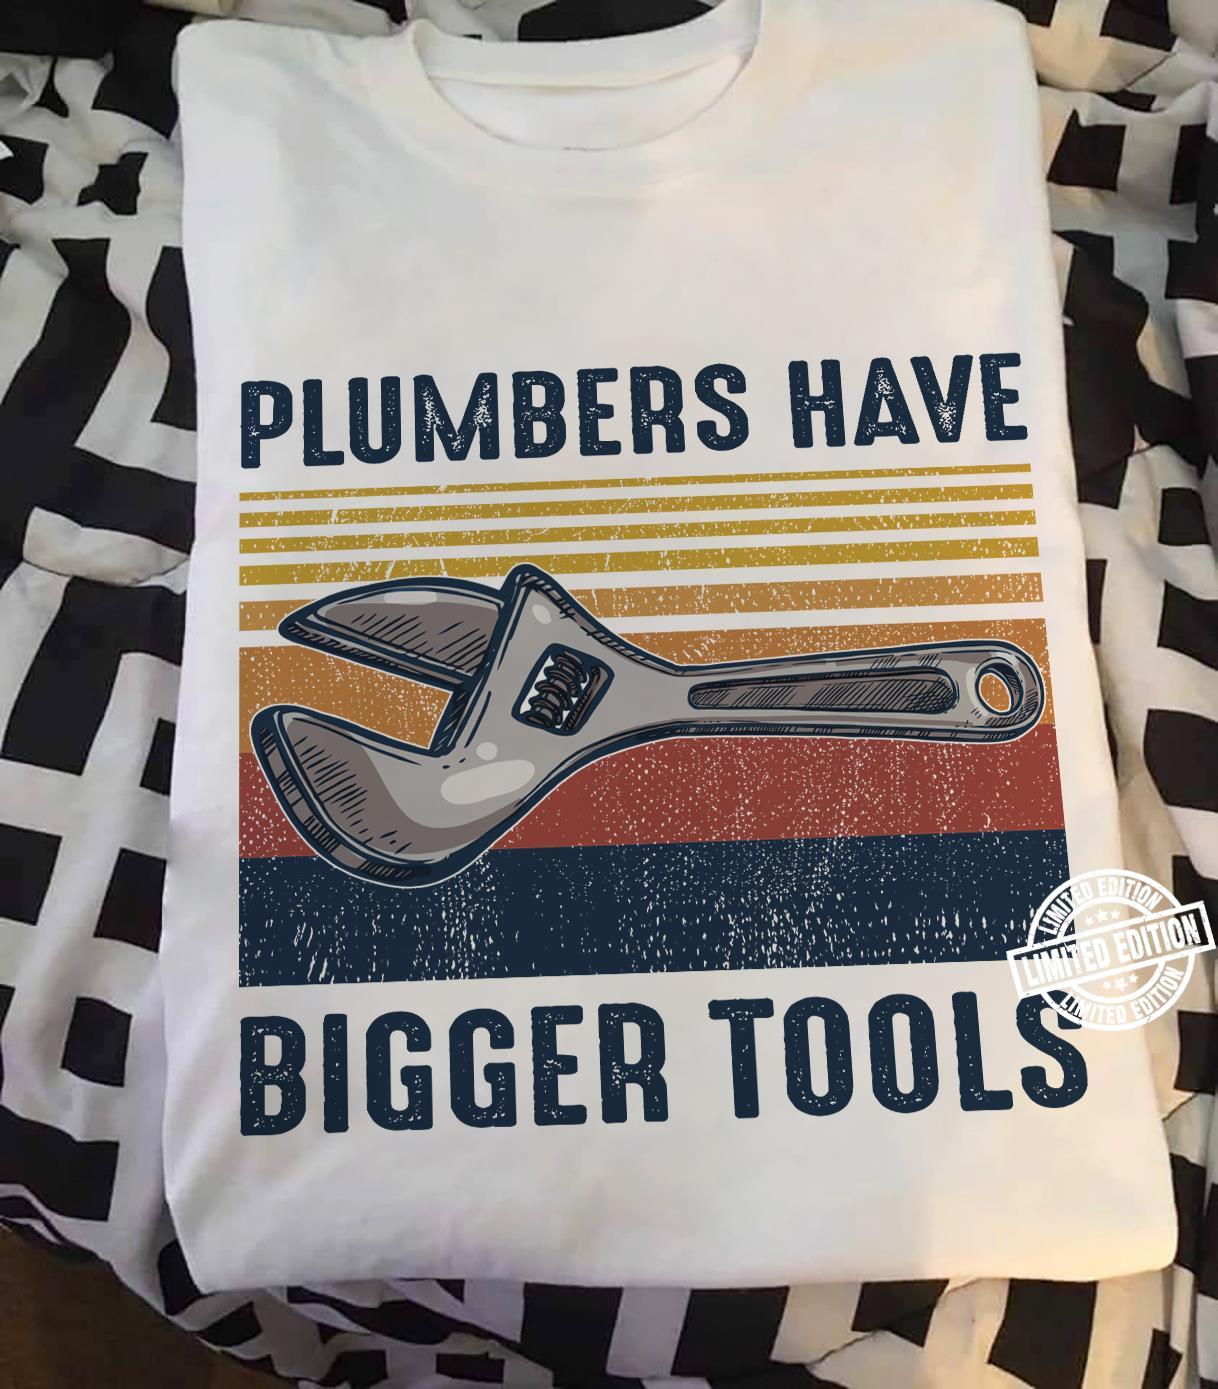 Plumbers have bigger tools shirt